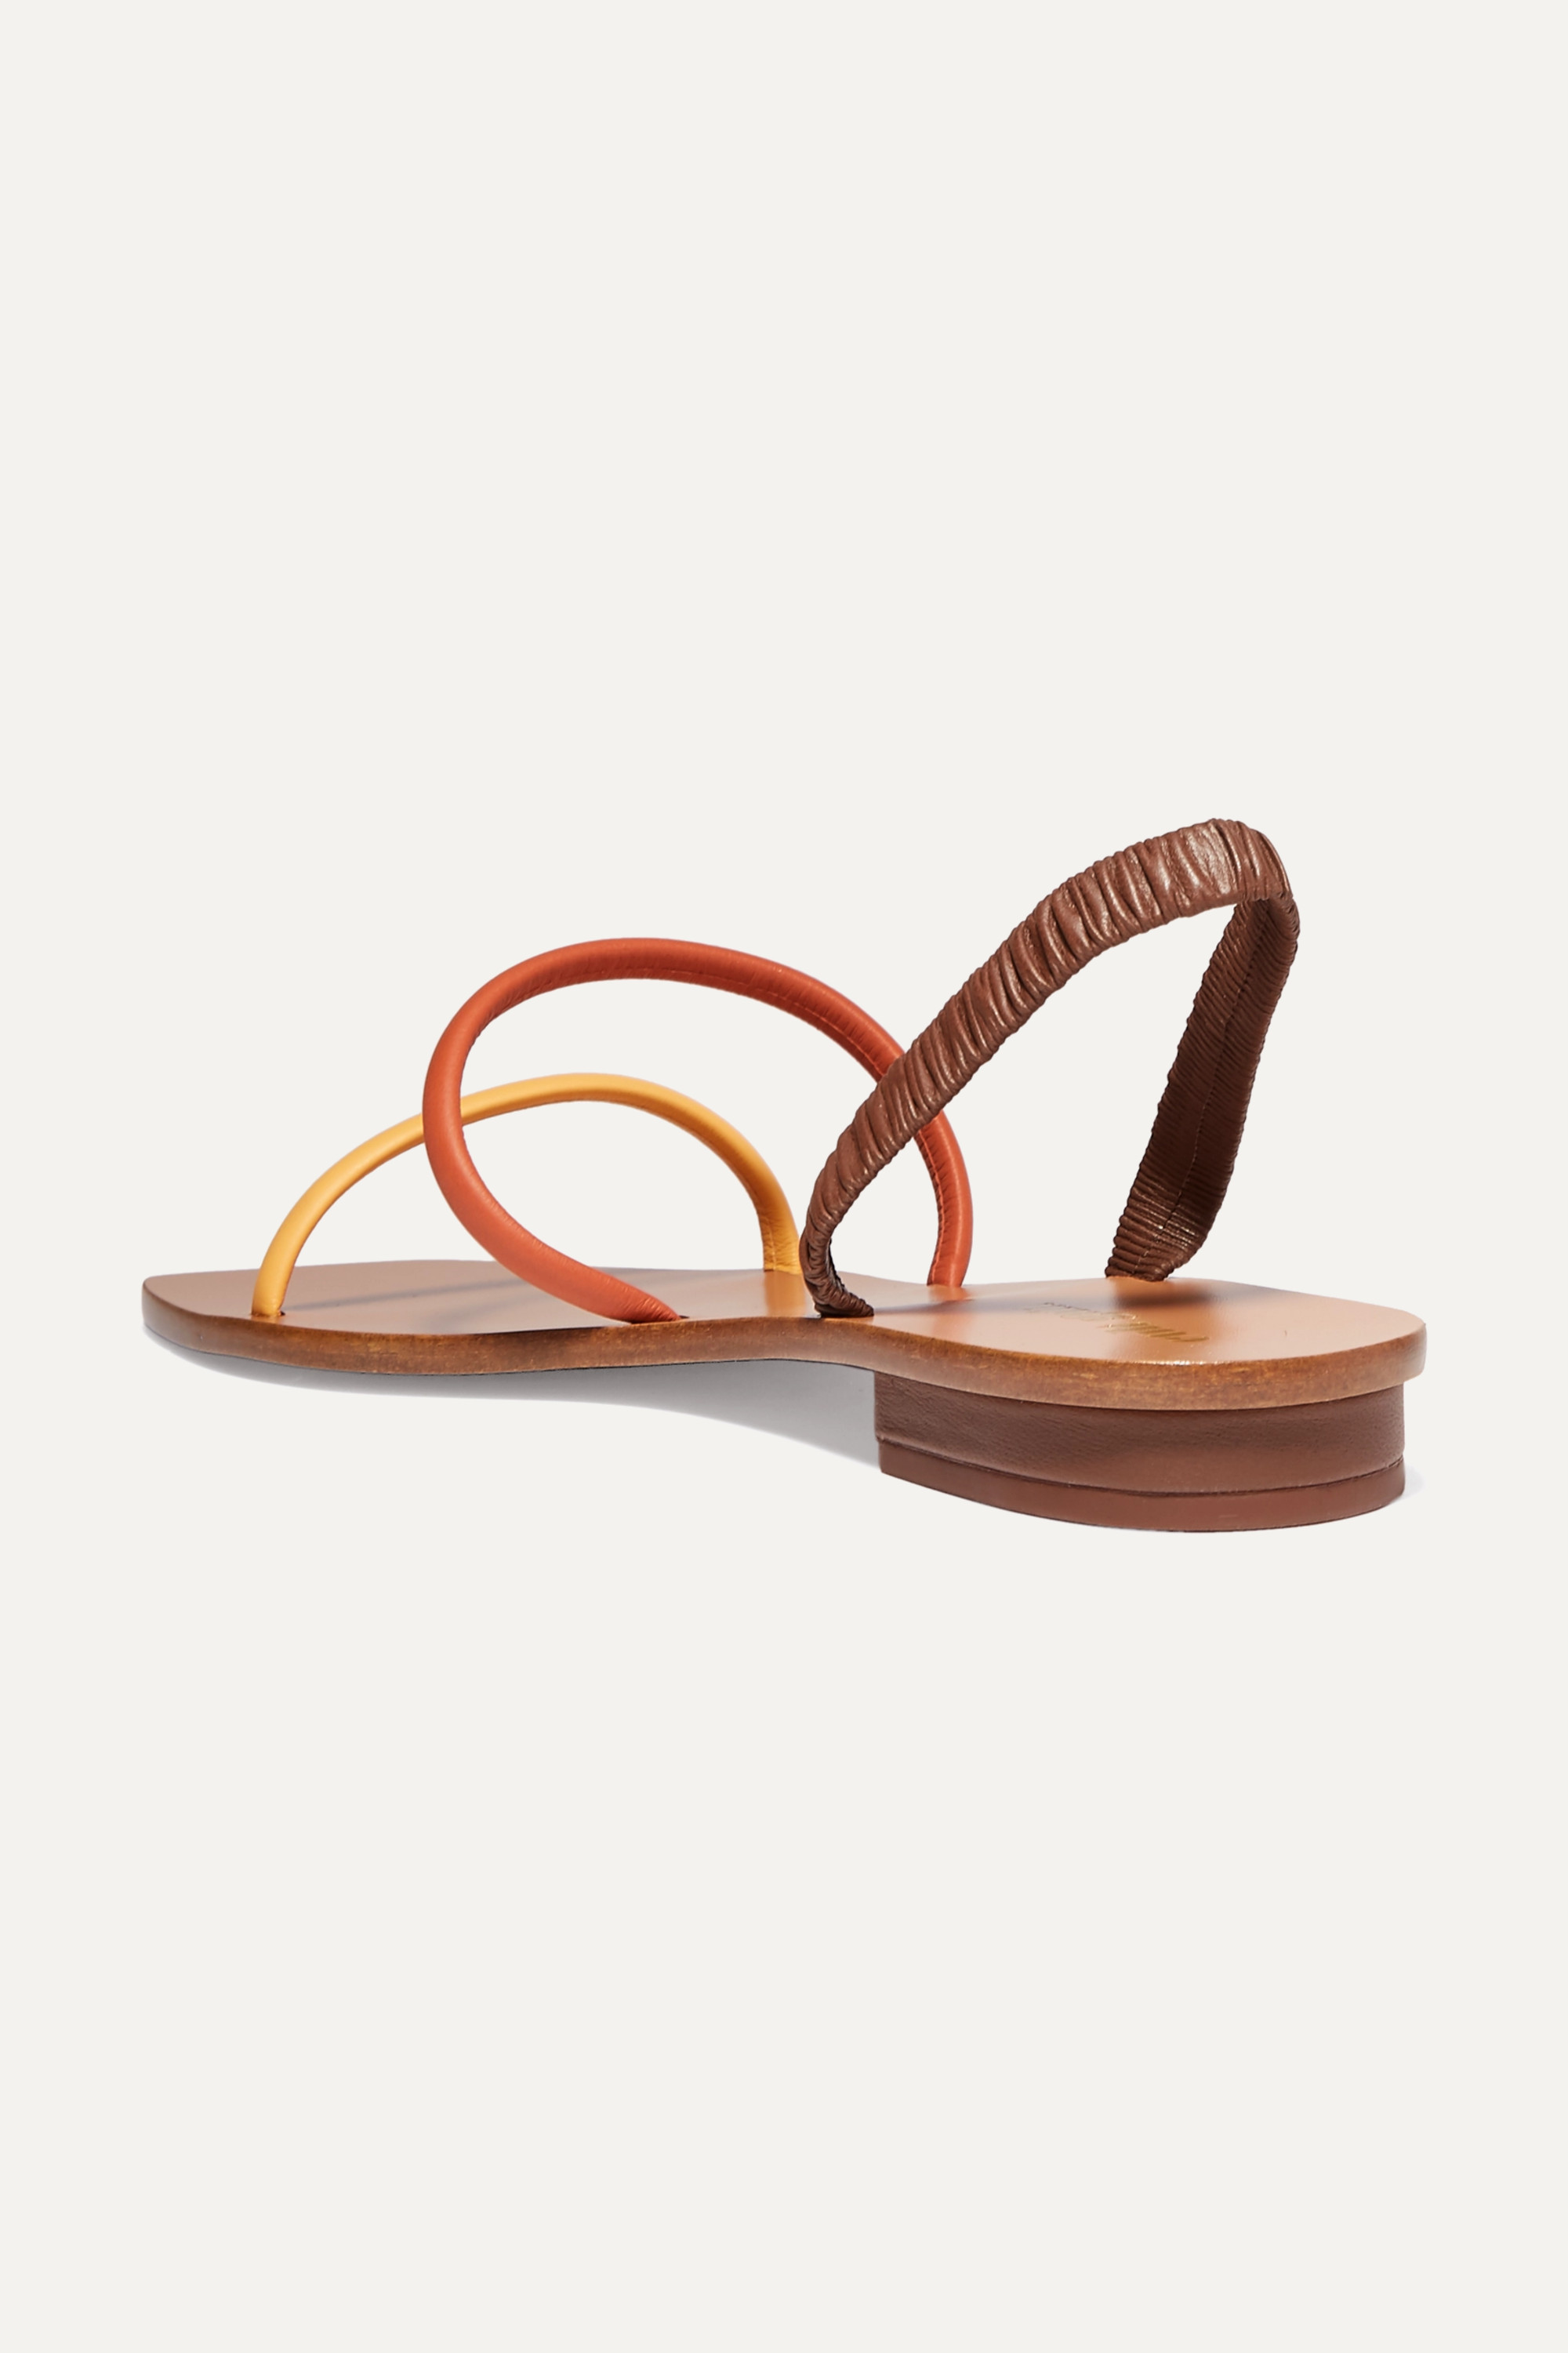 Cult Gaia Mona leather sandals